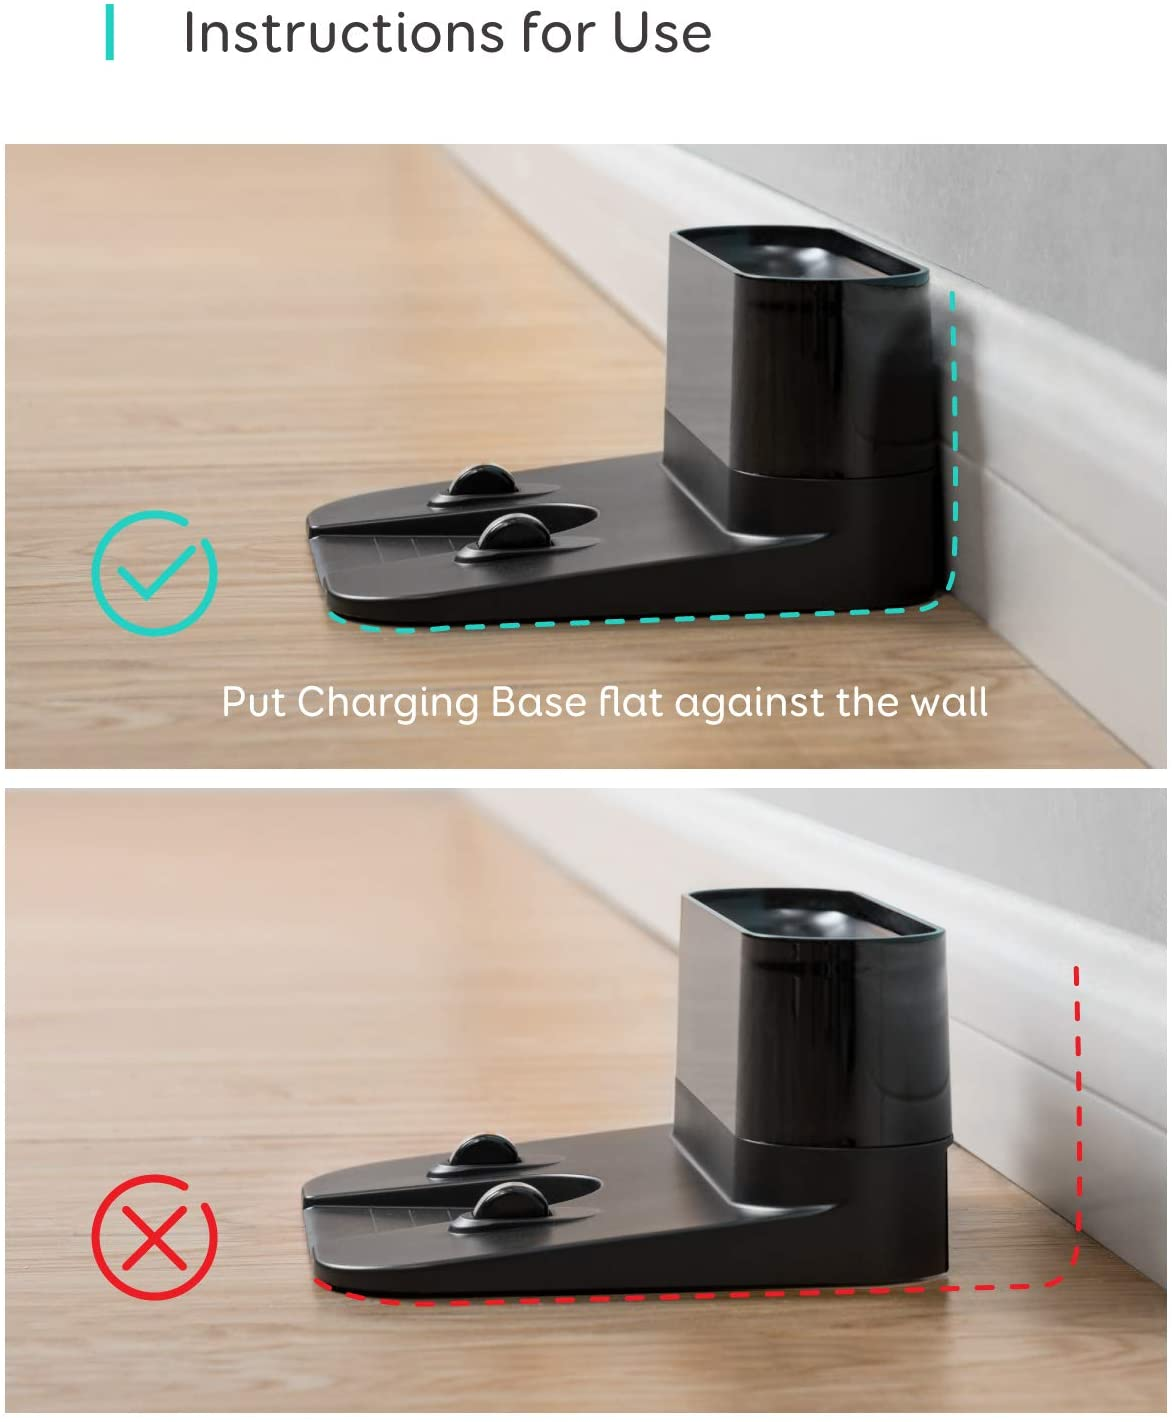 Charging  base + Power adapter